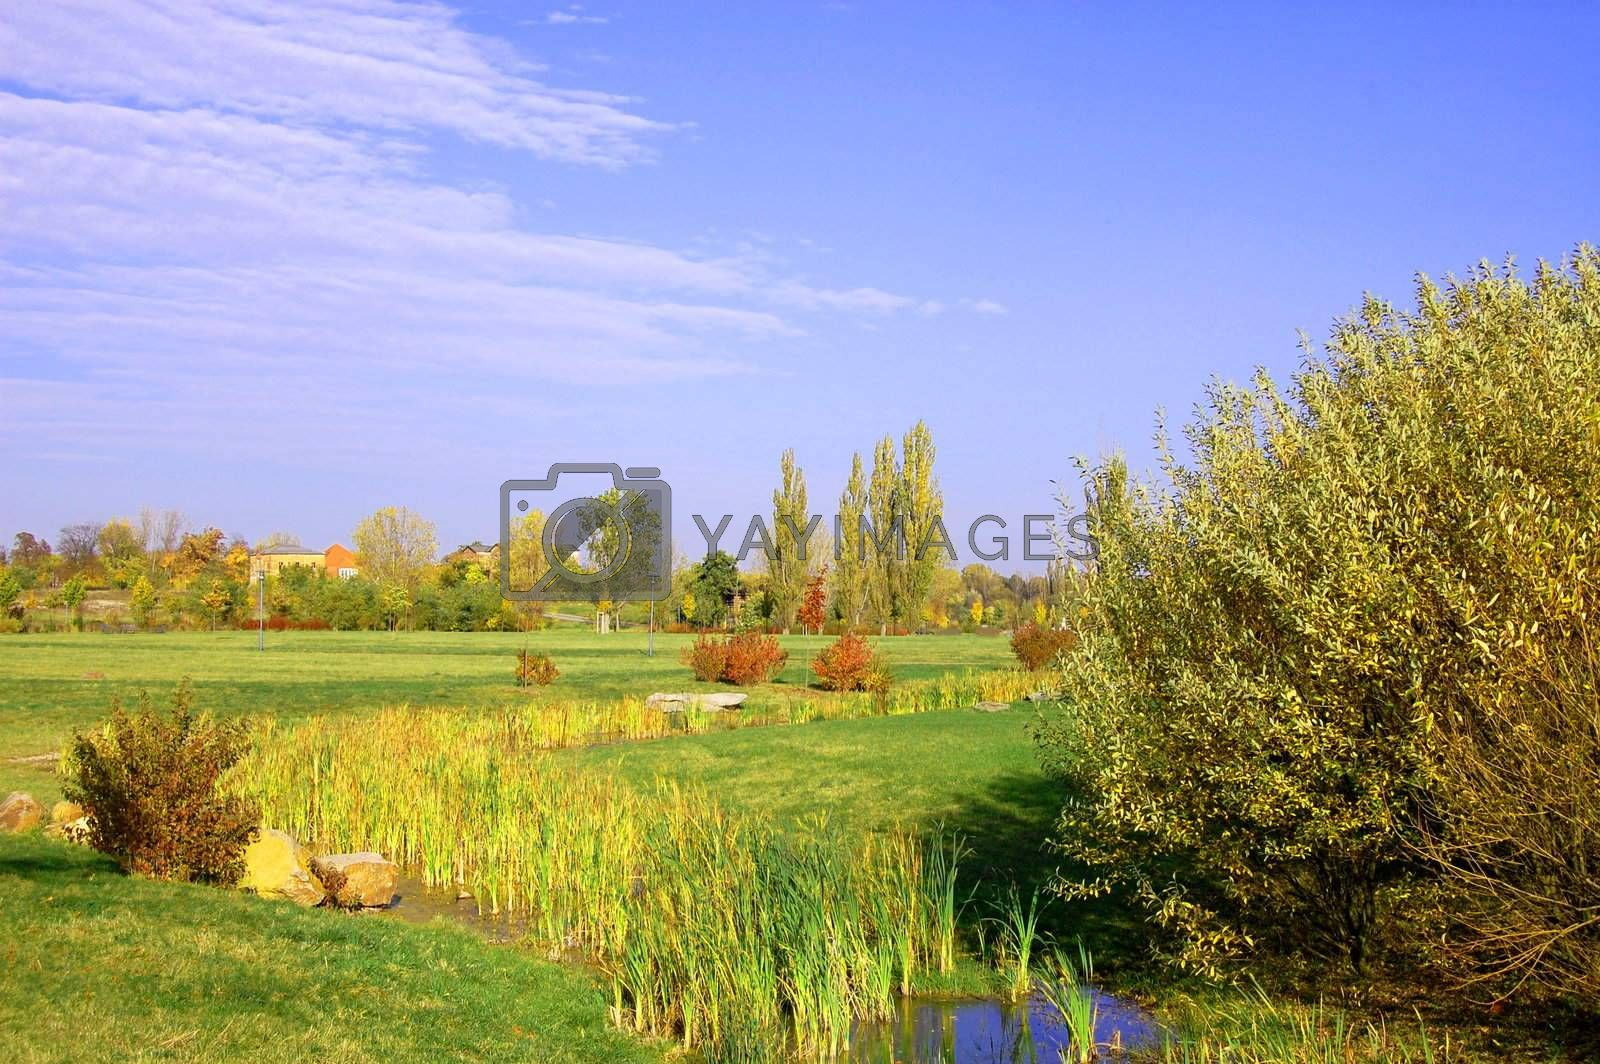 summer in the park with green trees and grass under blue sky